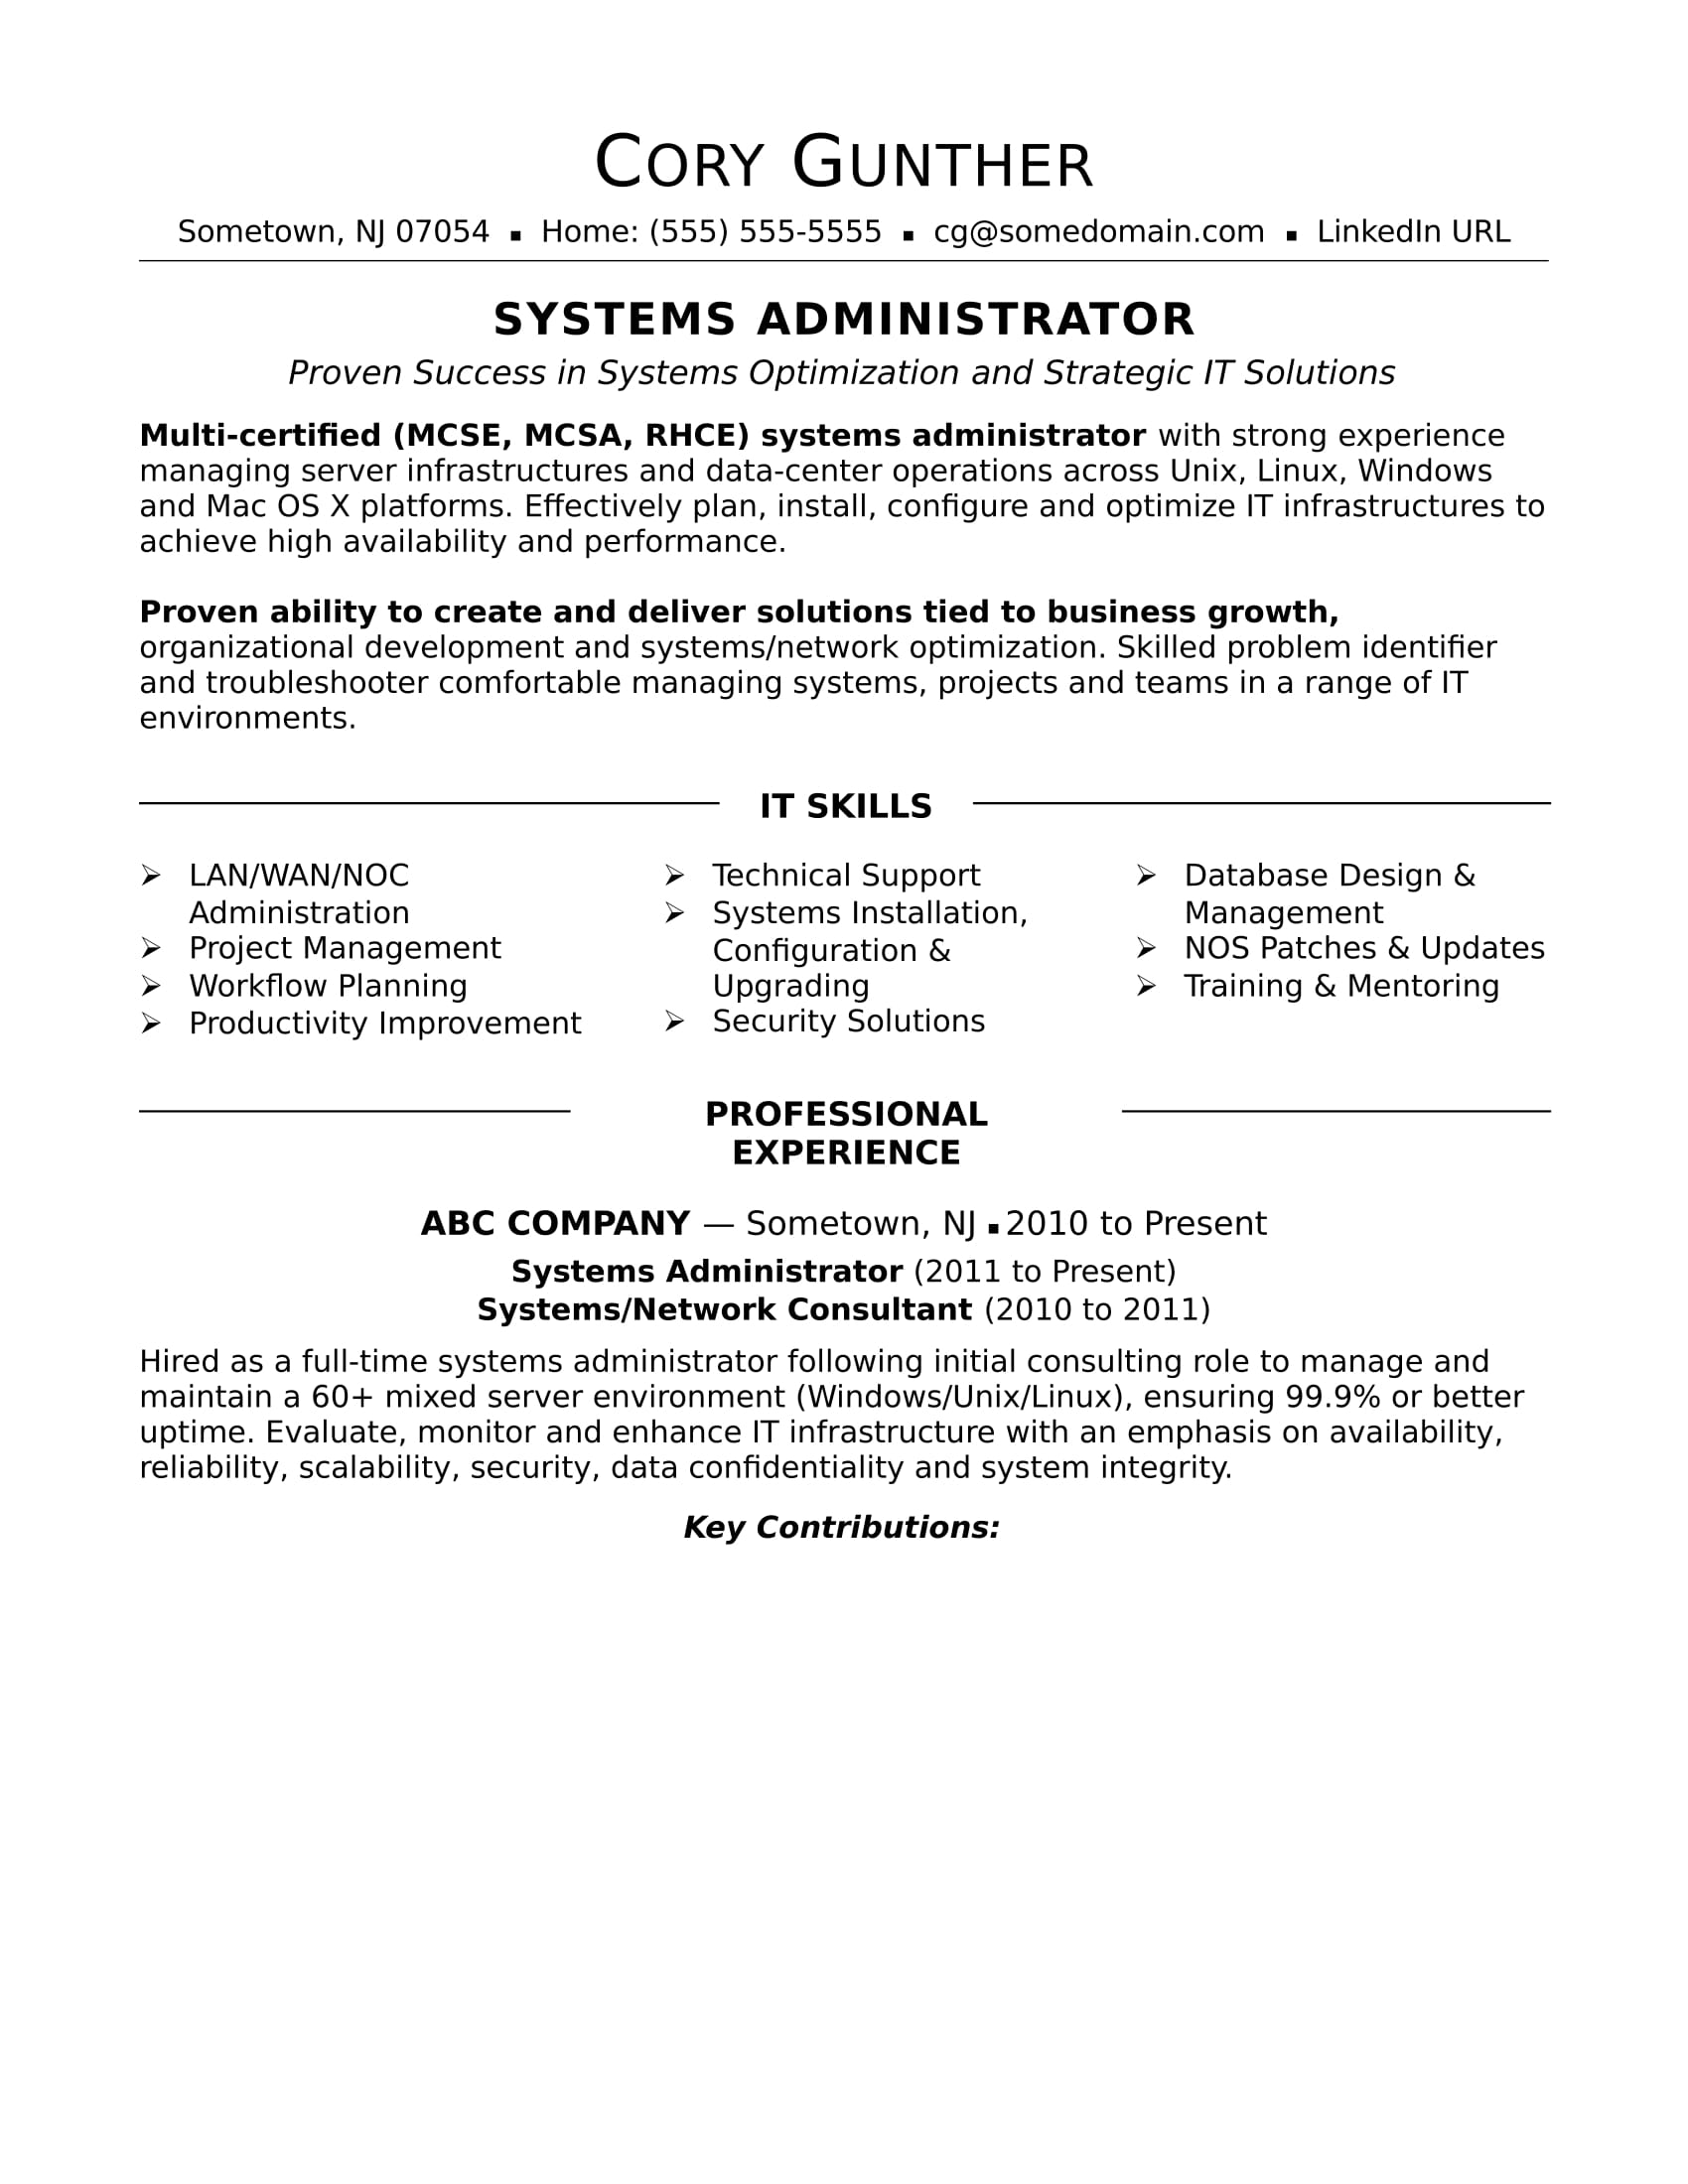 Sample Resume For An Experienced Systems Administrator  Server Skills For Resume